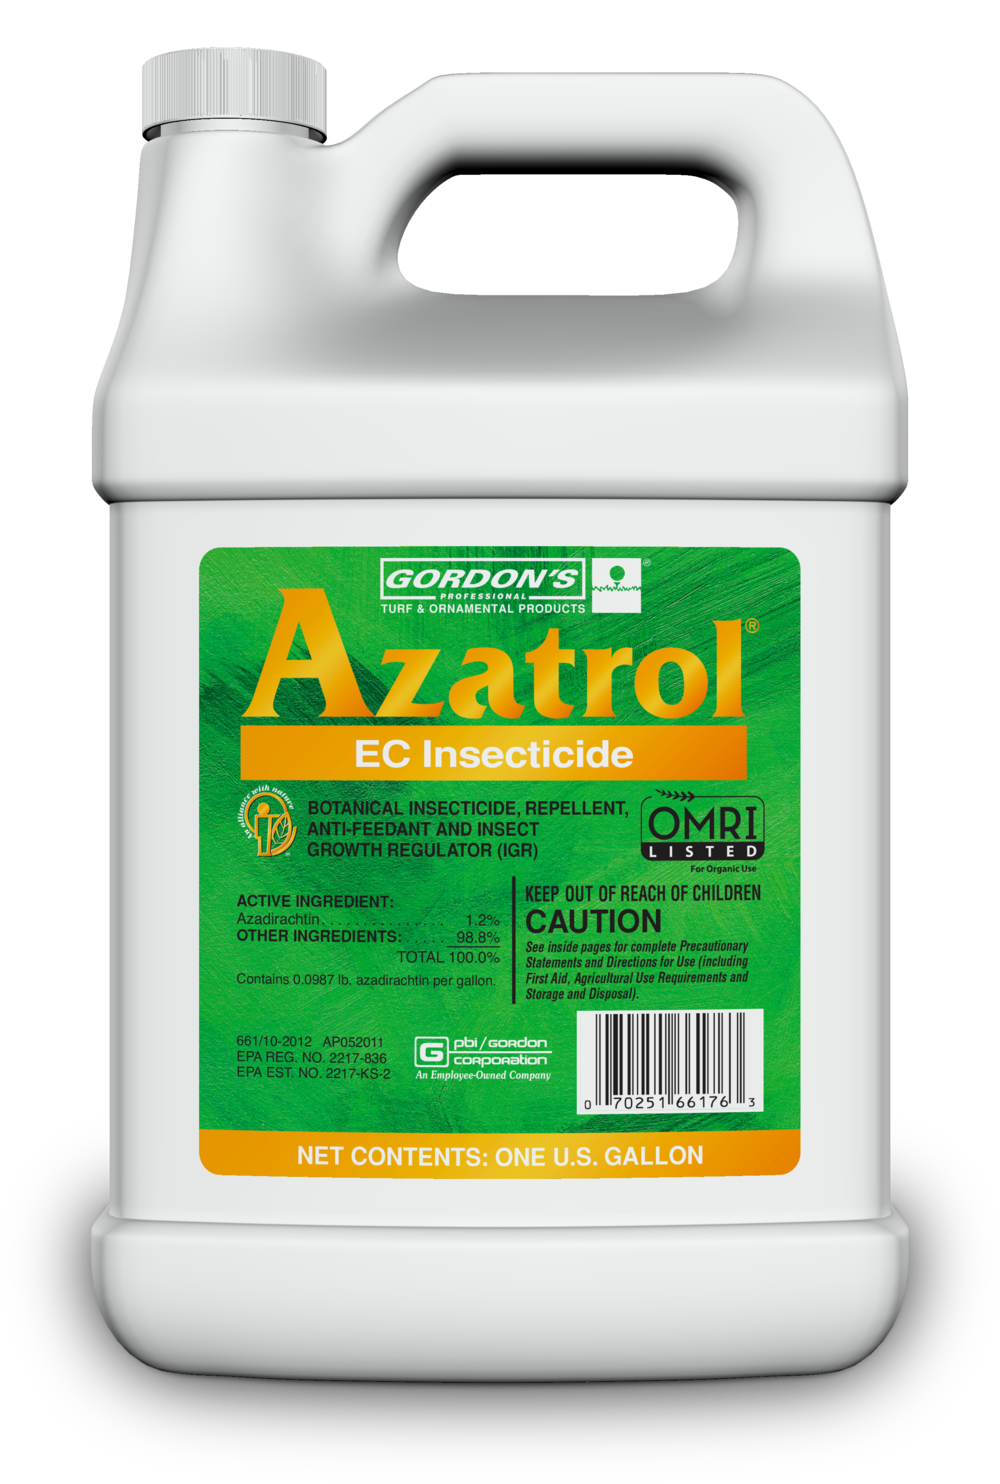 AZATROL TESTED POSITIVE FOR: permethrin, bifenthrin, cypermethrin, cyfluthrin, and chlorphyrifos